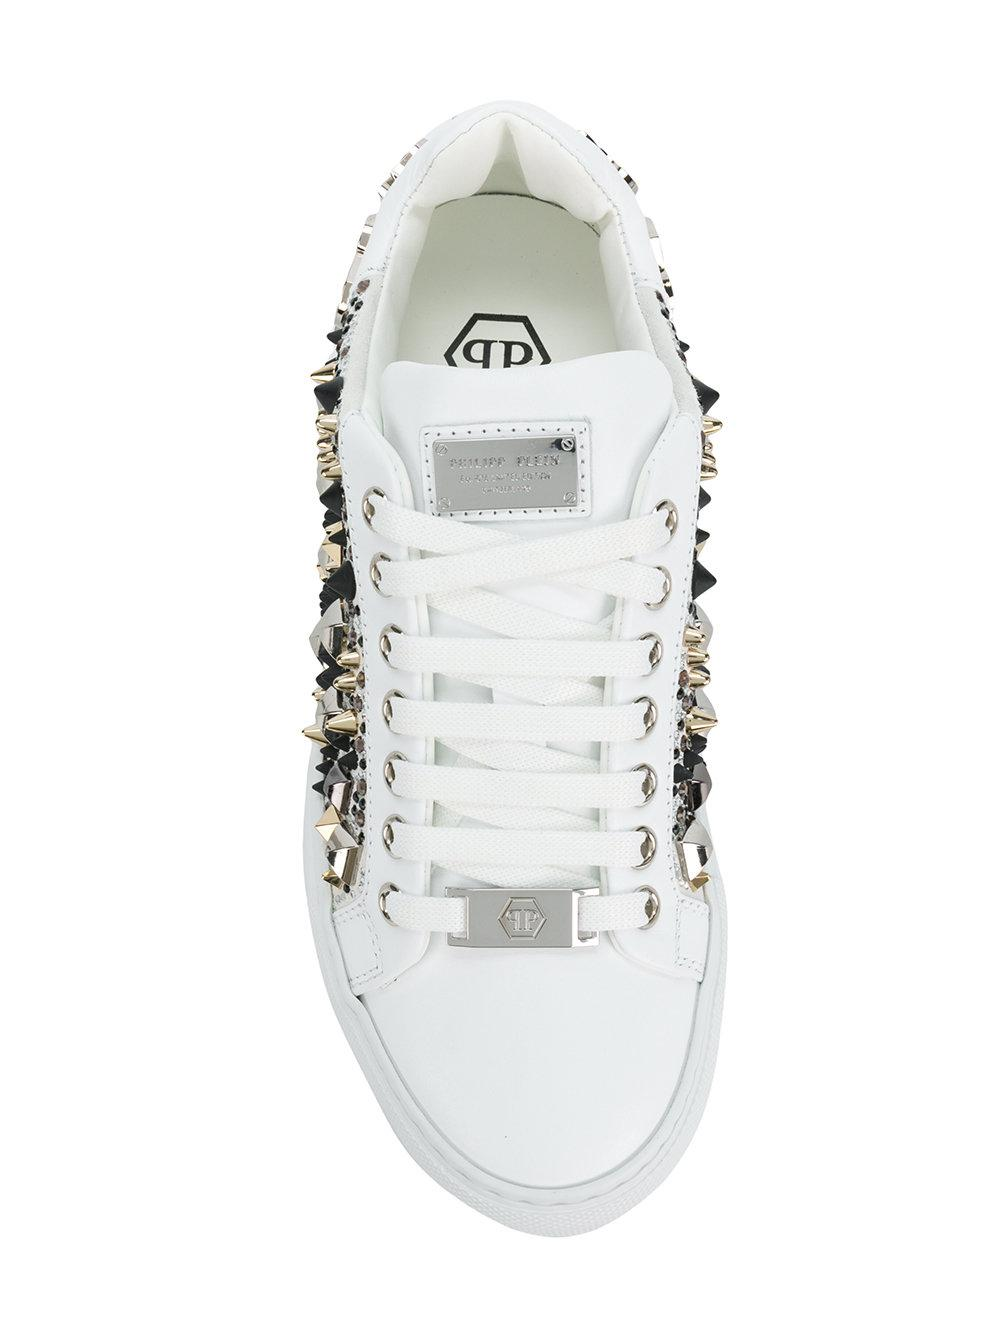 Philipp Plein Leather Stud Embellished Sneakers in White